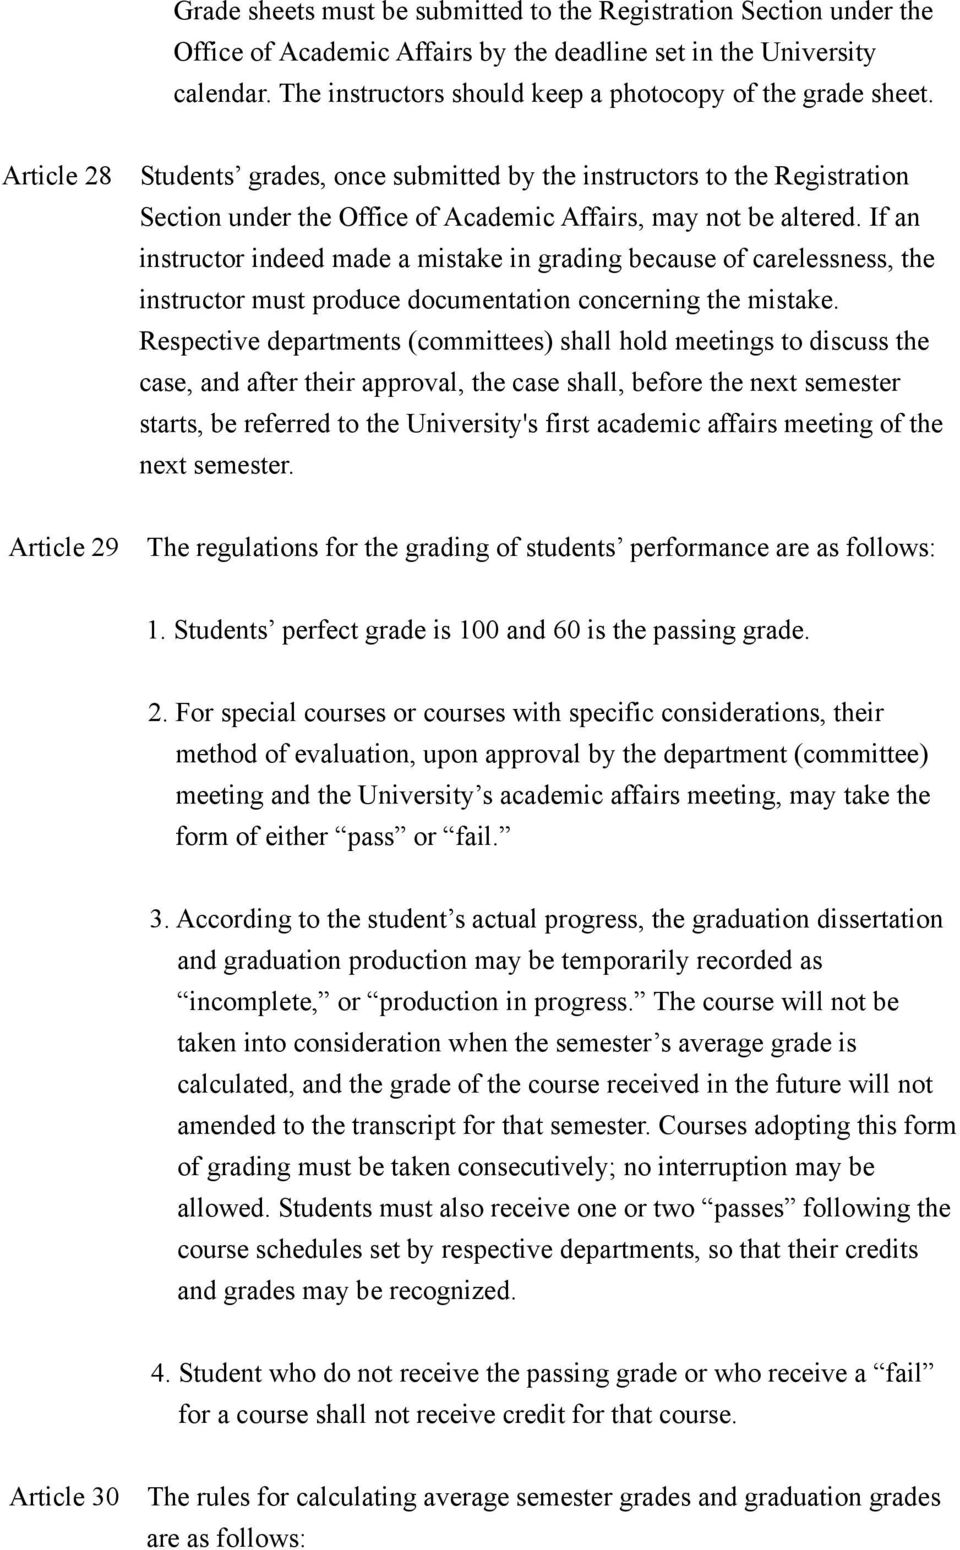 Article 28 Students grades, once submitted by the instructors to the Registration Section under the Office of Academic Affairs, may not be altered.